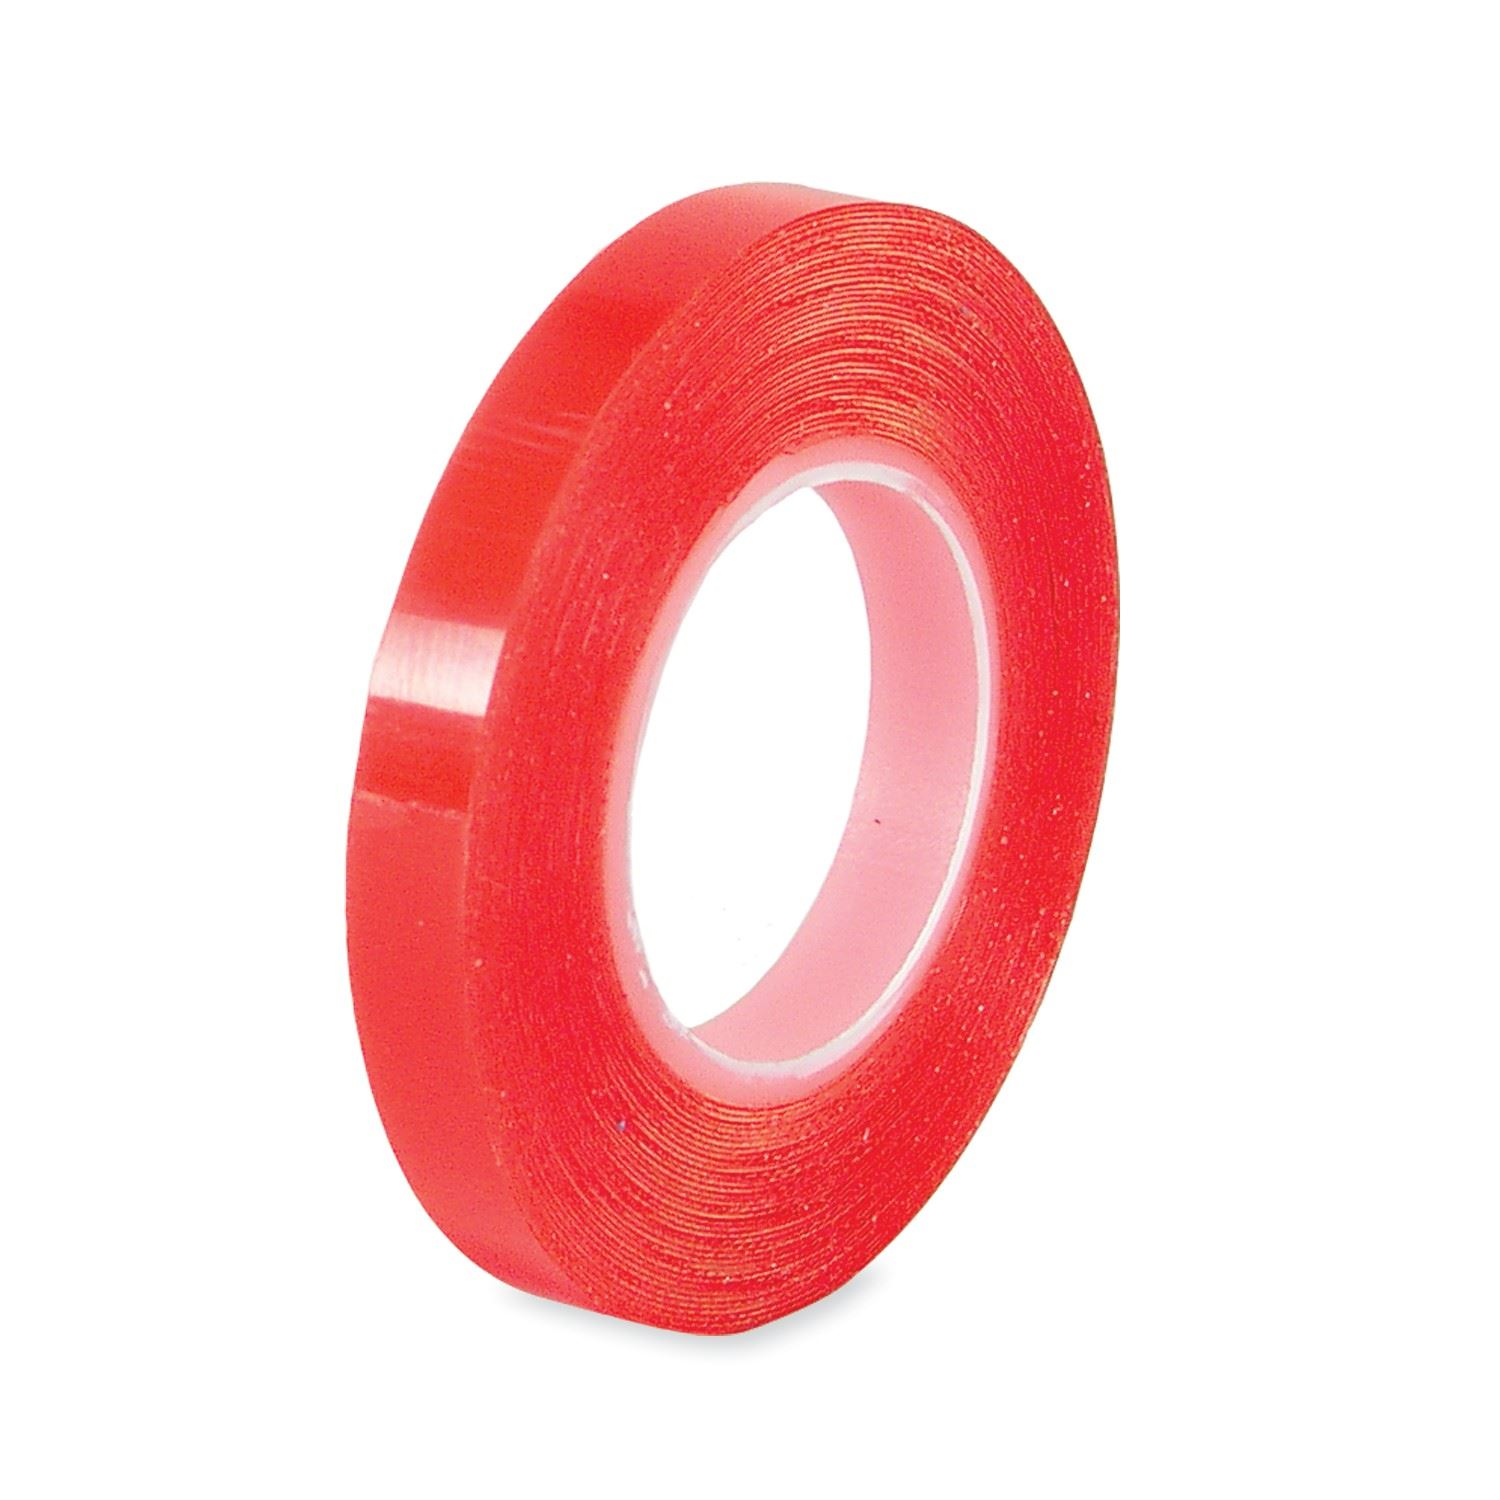 Double Sided 6MM x 25M Super Bond for Phone and Tablet Repair